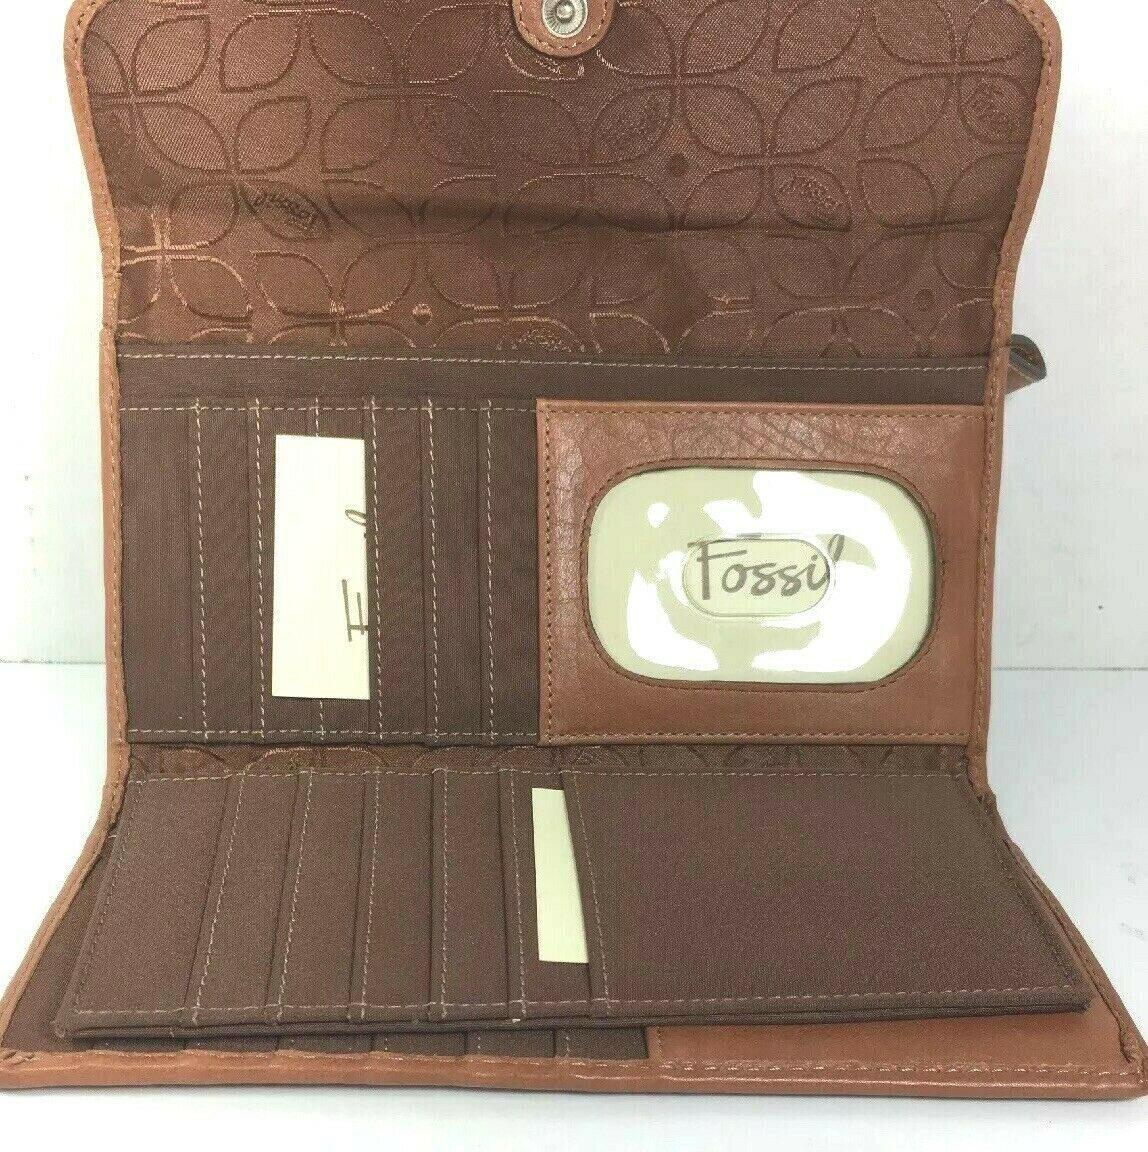 Fossil Brown Leather Clutch Wallet image 2